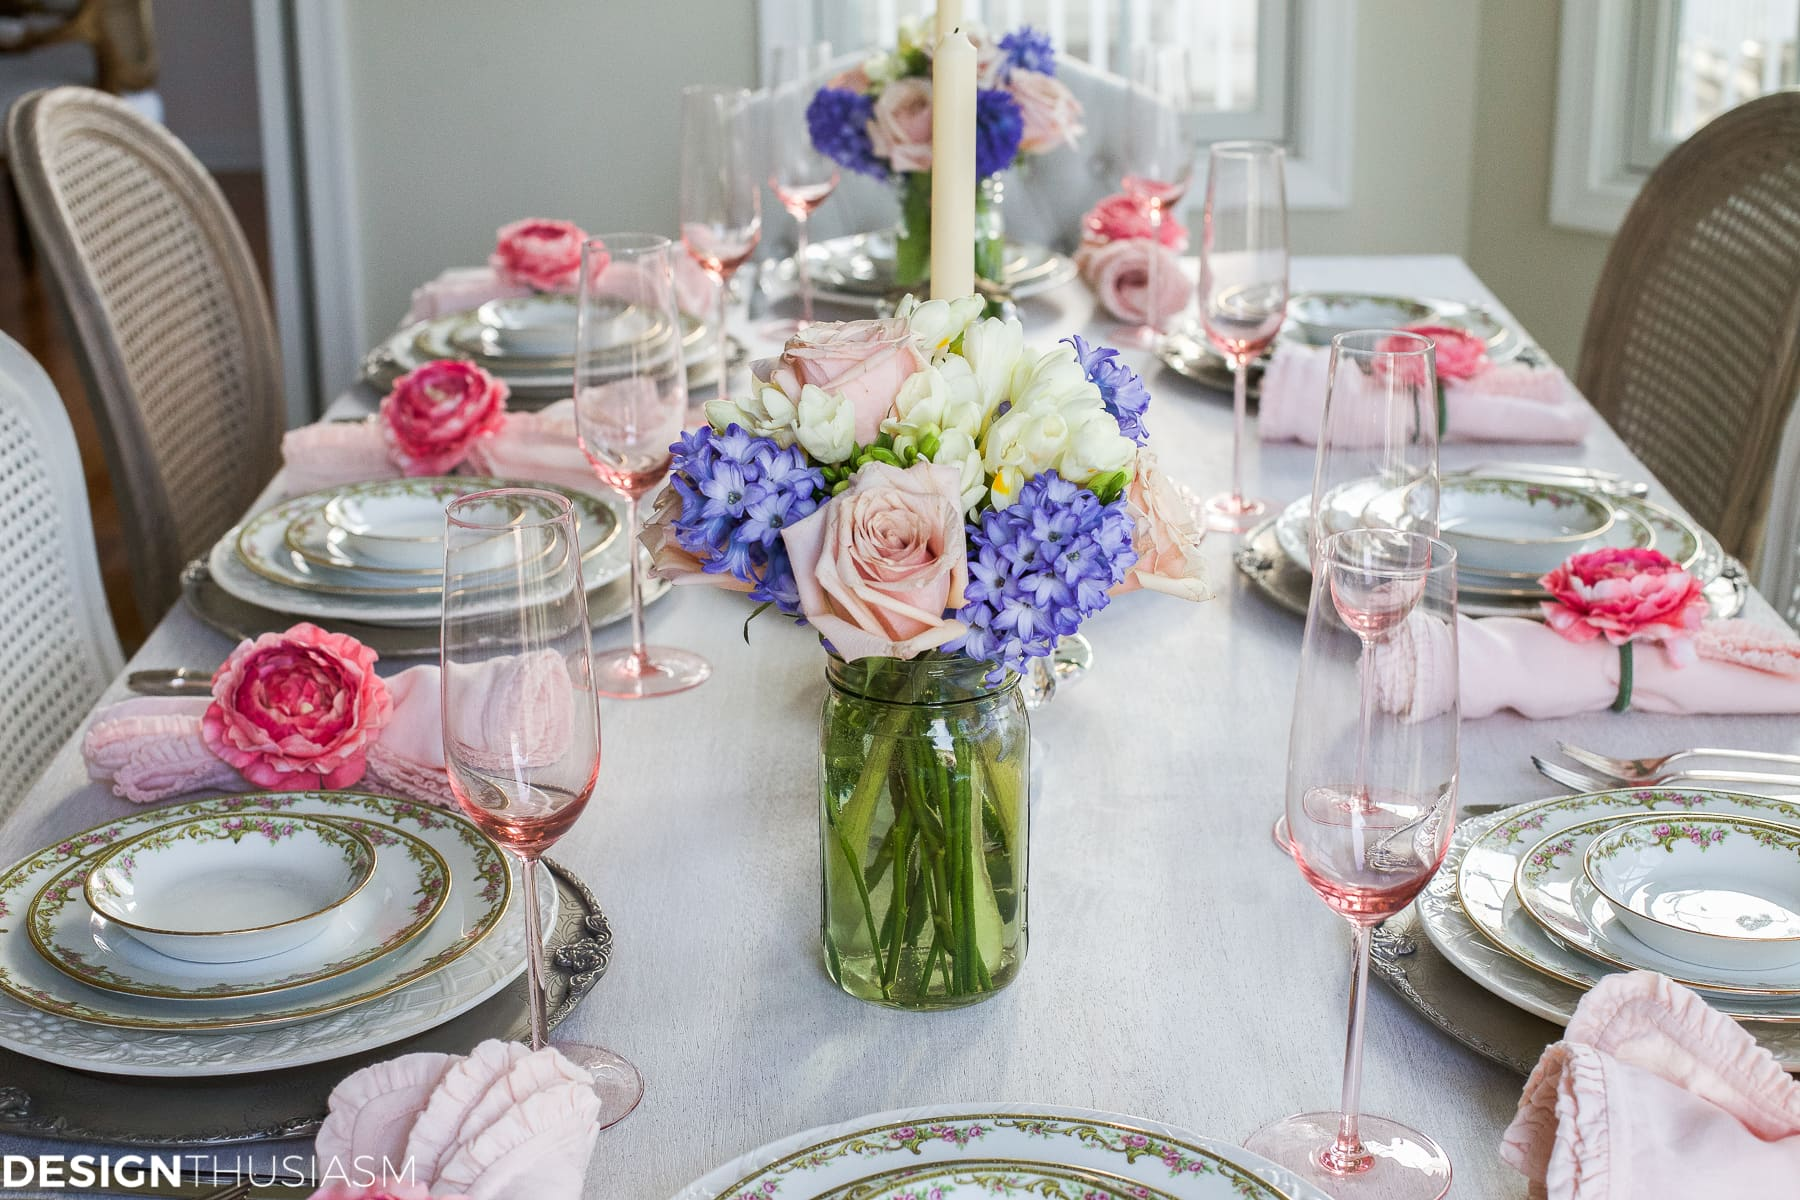 Exceptionnel Spring Table Setting: Pretty Pastels For A Sweet Occasion